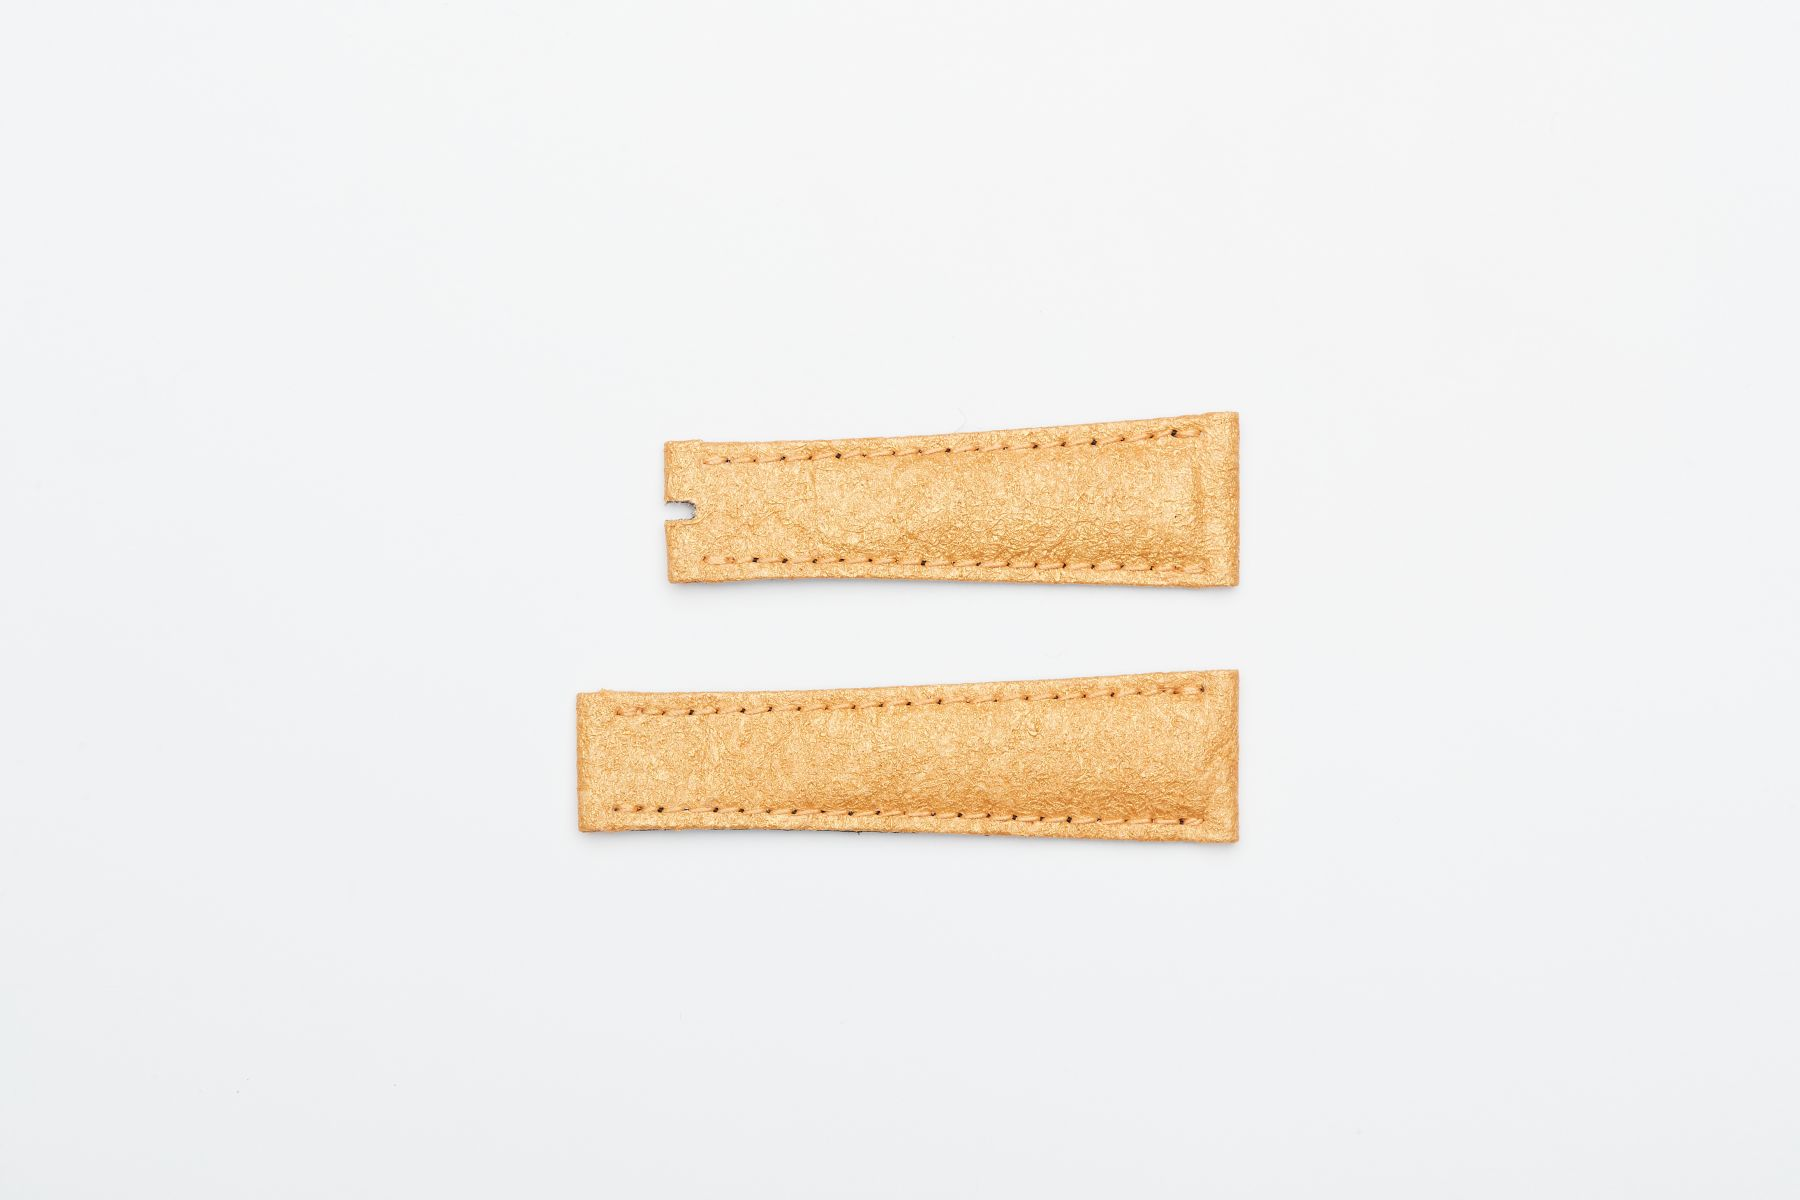 Yellow Gold Pinatex Replacement Strap 20mm for Rolex Daytona style timepieces. Vegan